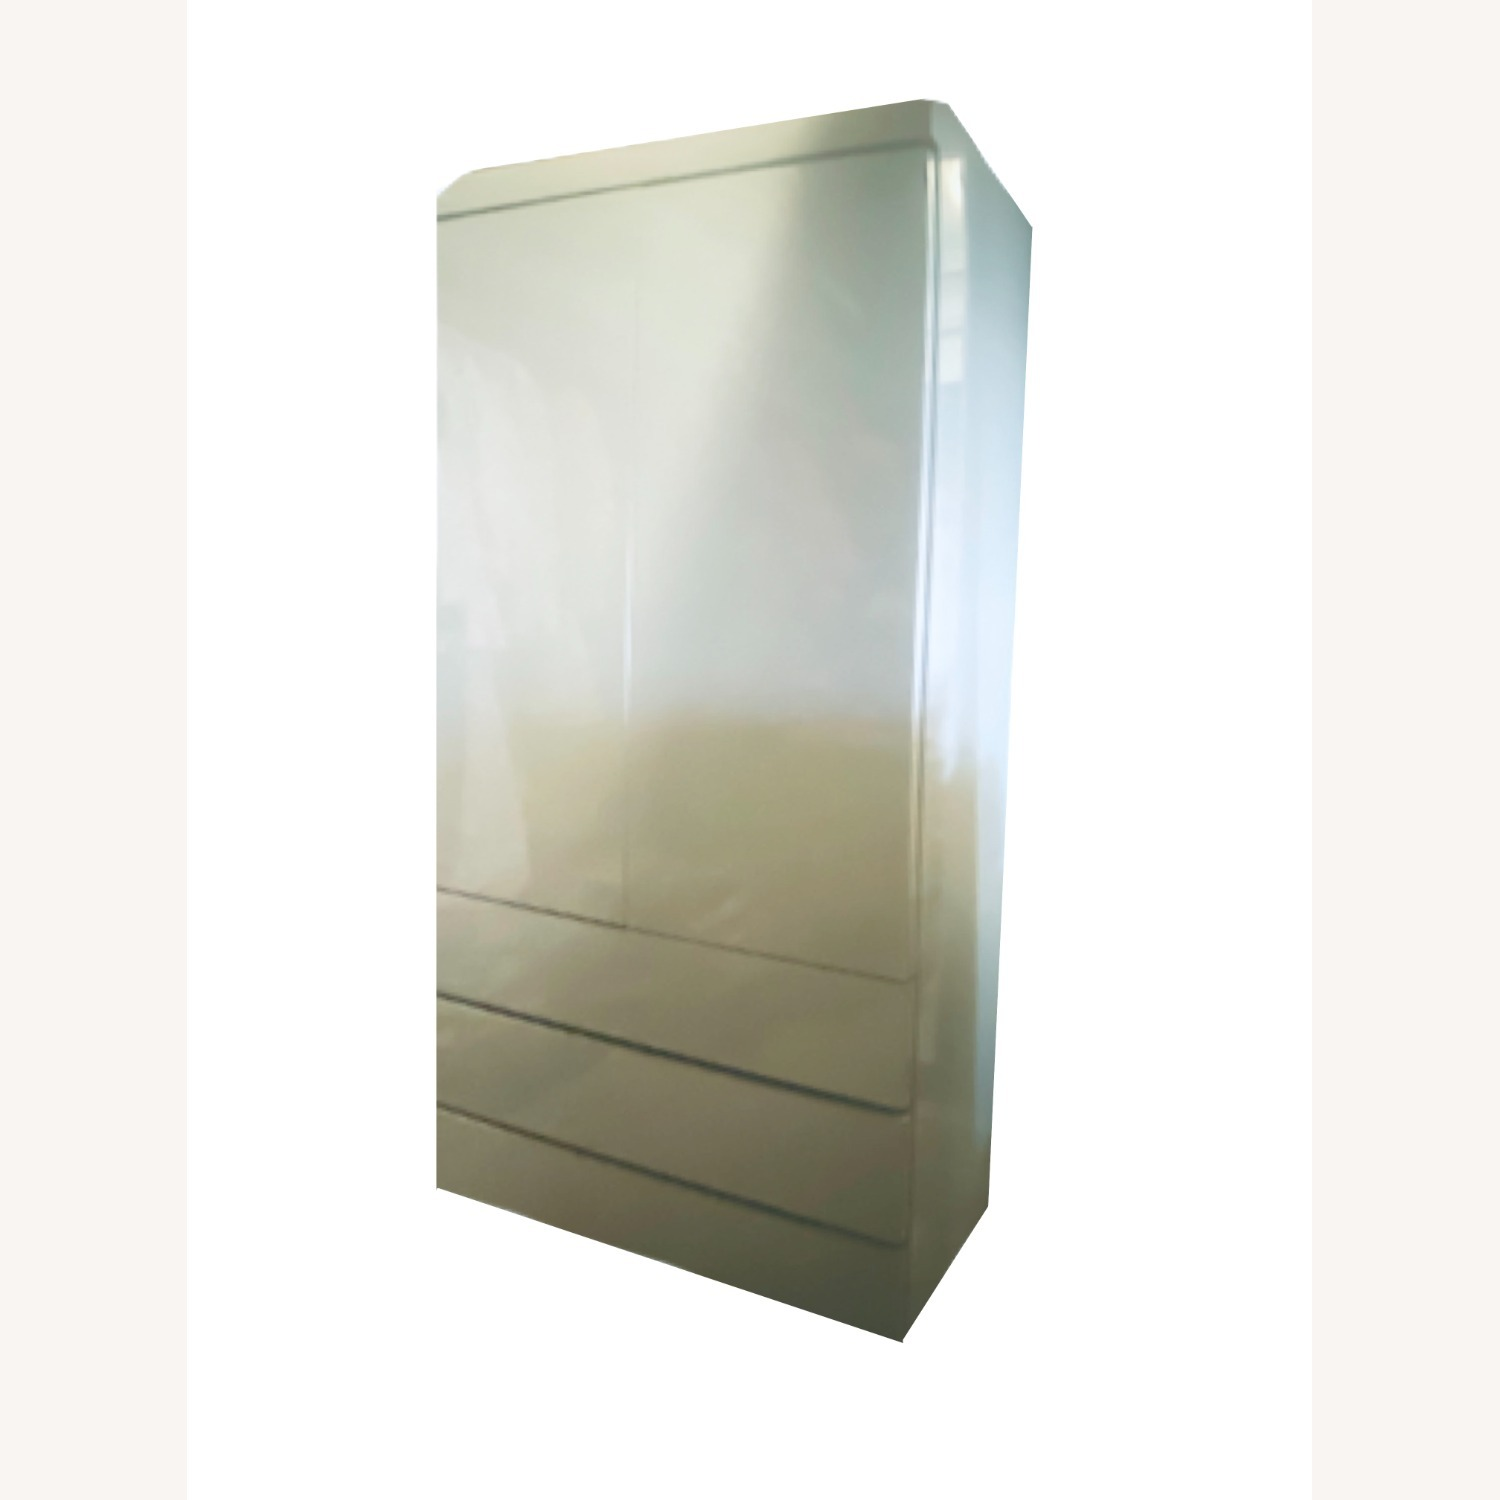 1980s Glossy Mint Laminate Armoire - image-3